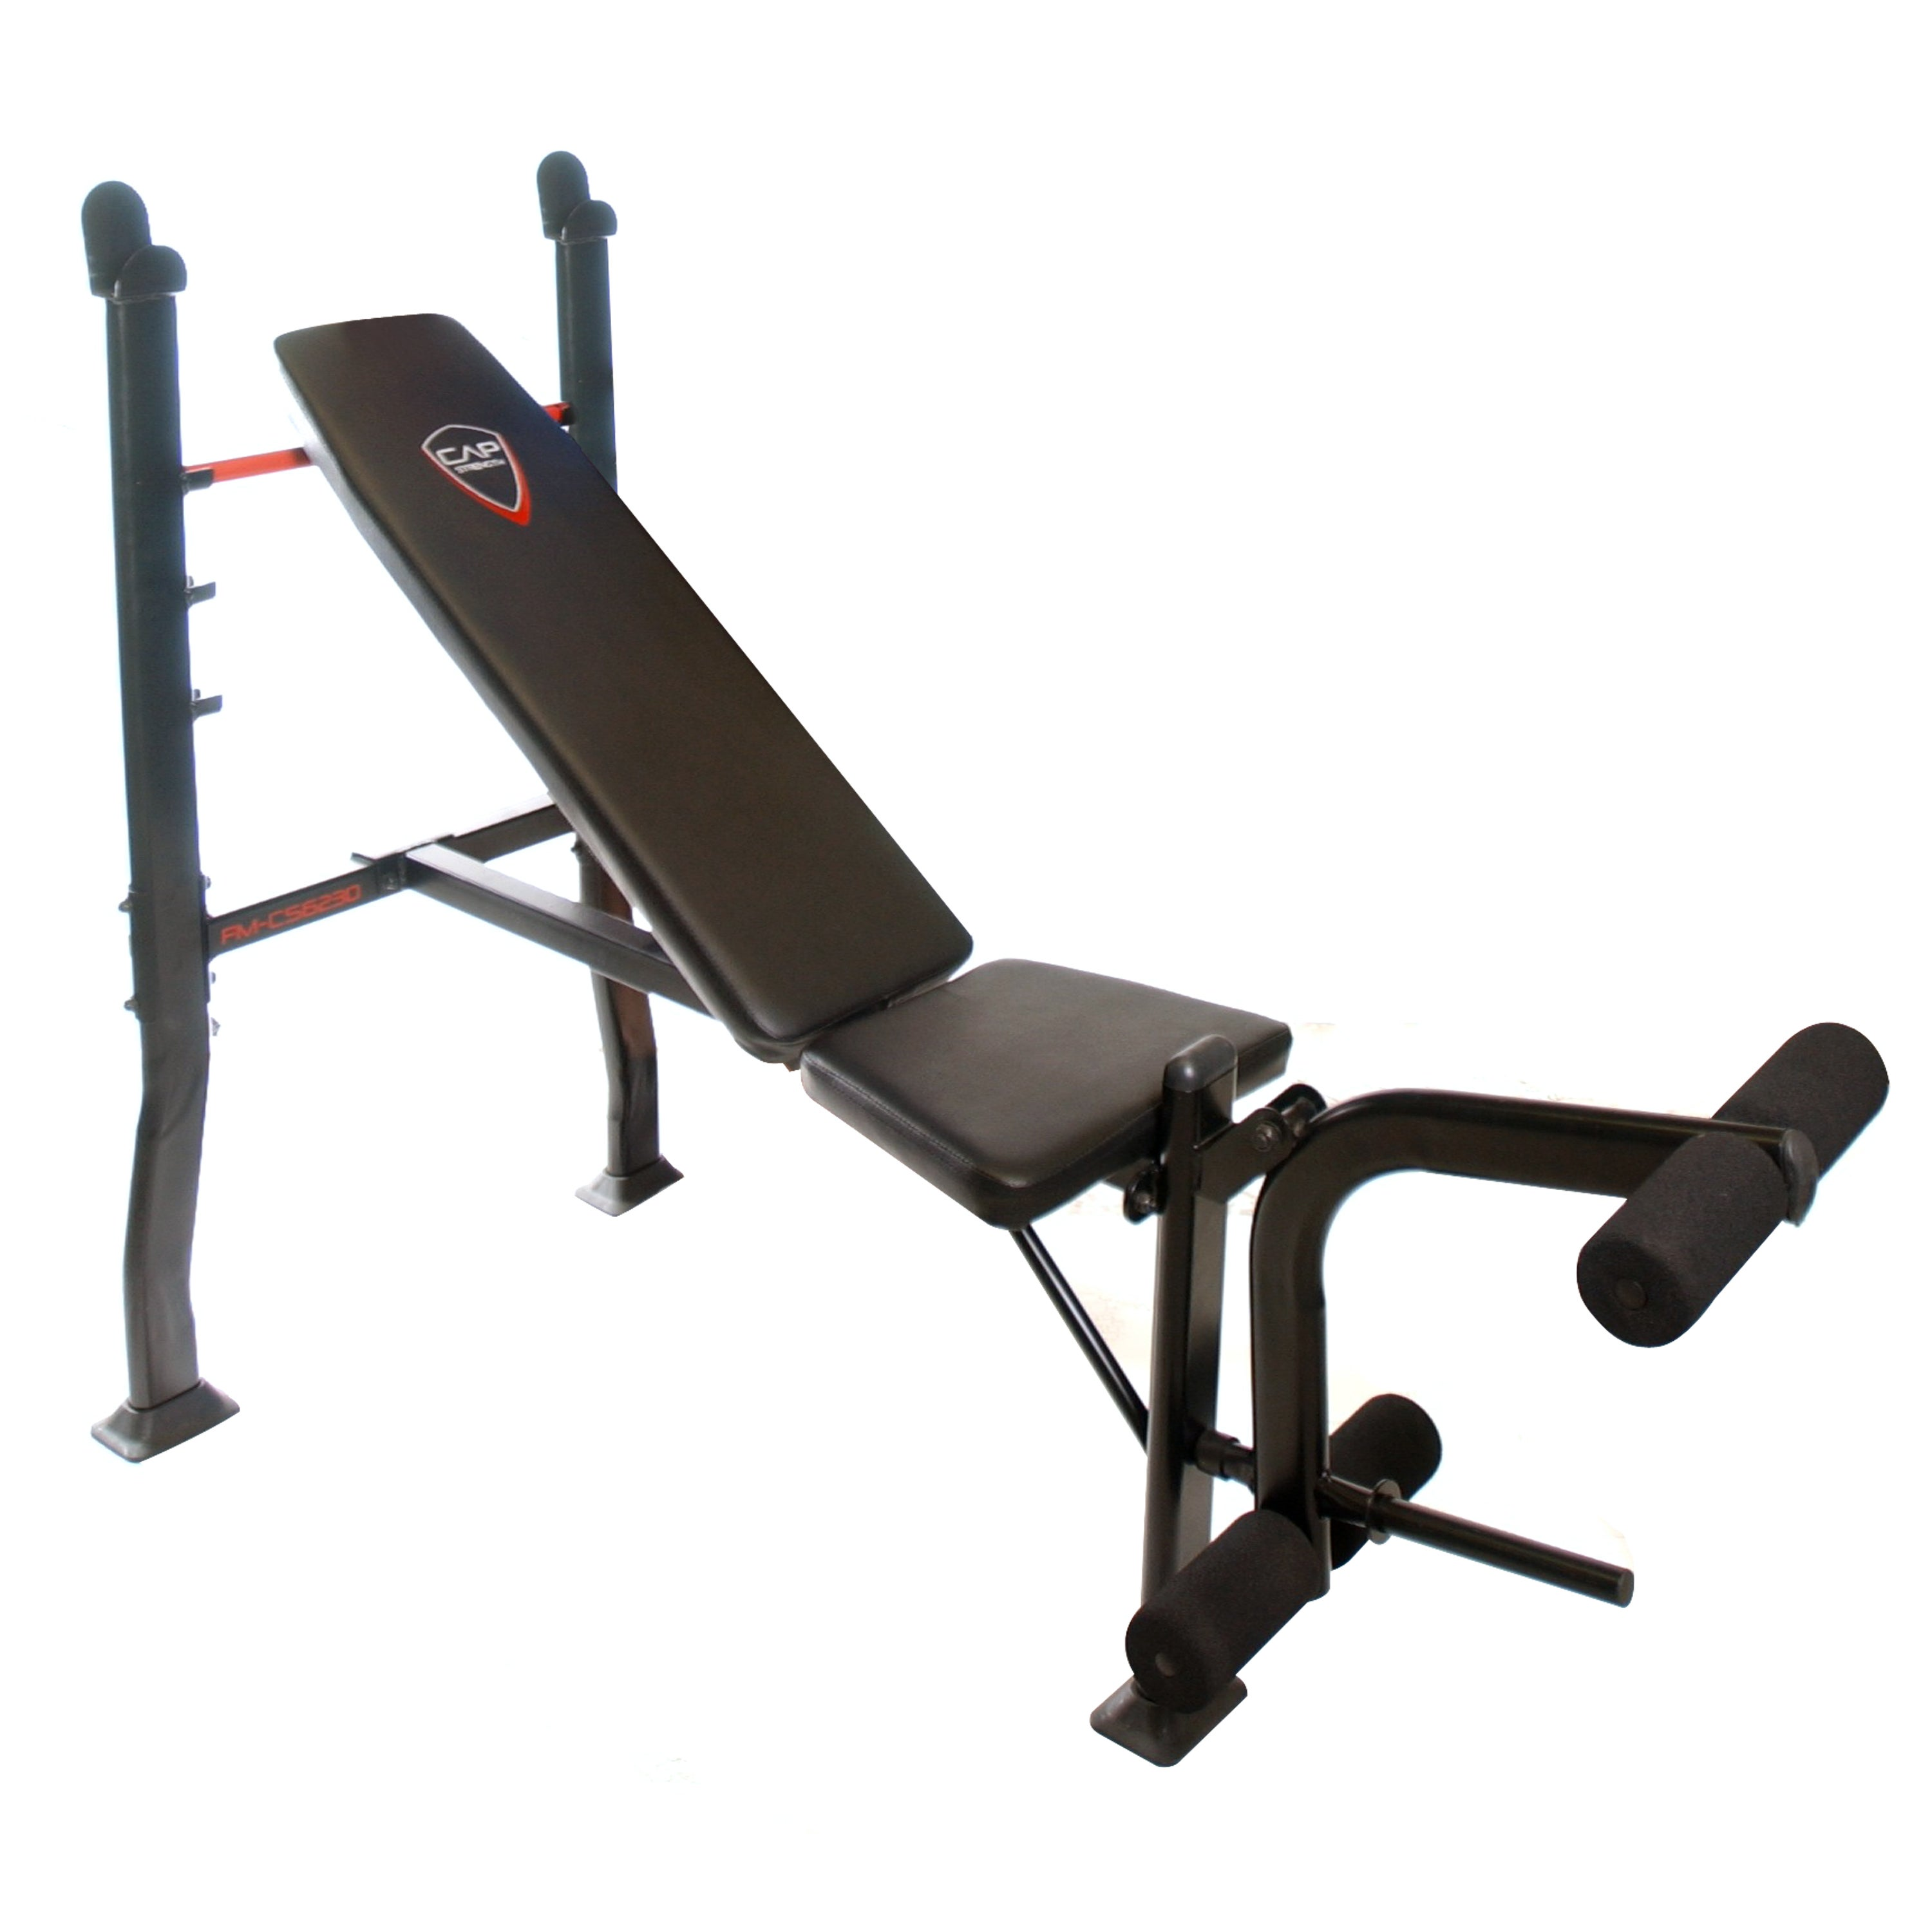 Cap Barbell Standard Weight Bench 14086179 Shopping The Best Prices On Cap